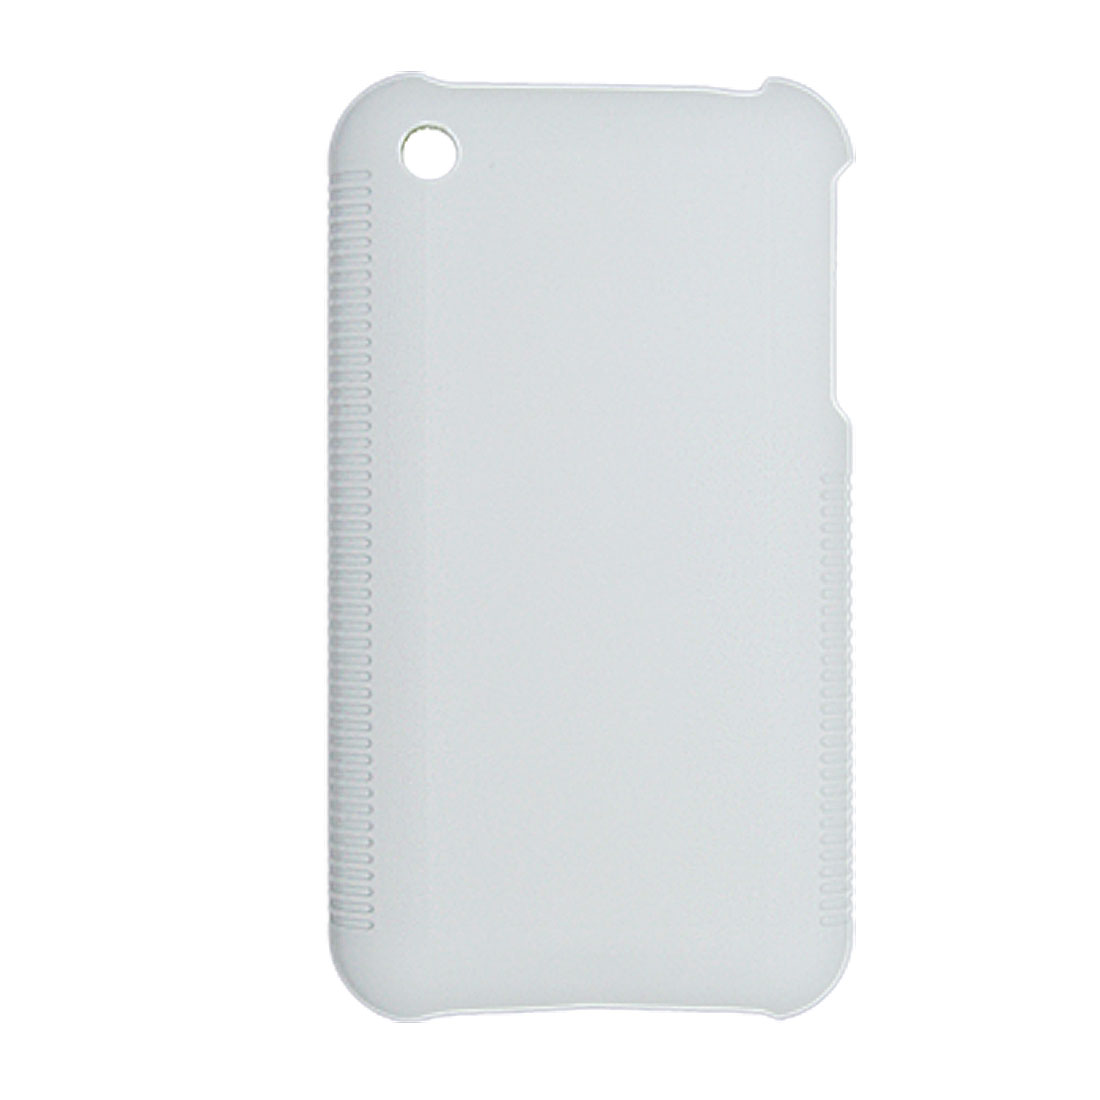 White Hard Plastic Protective Case for Apple iPhone 3G / 3GS